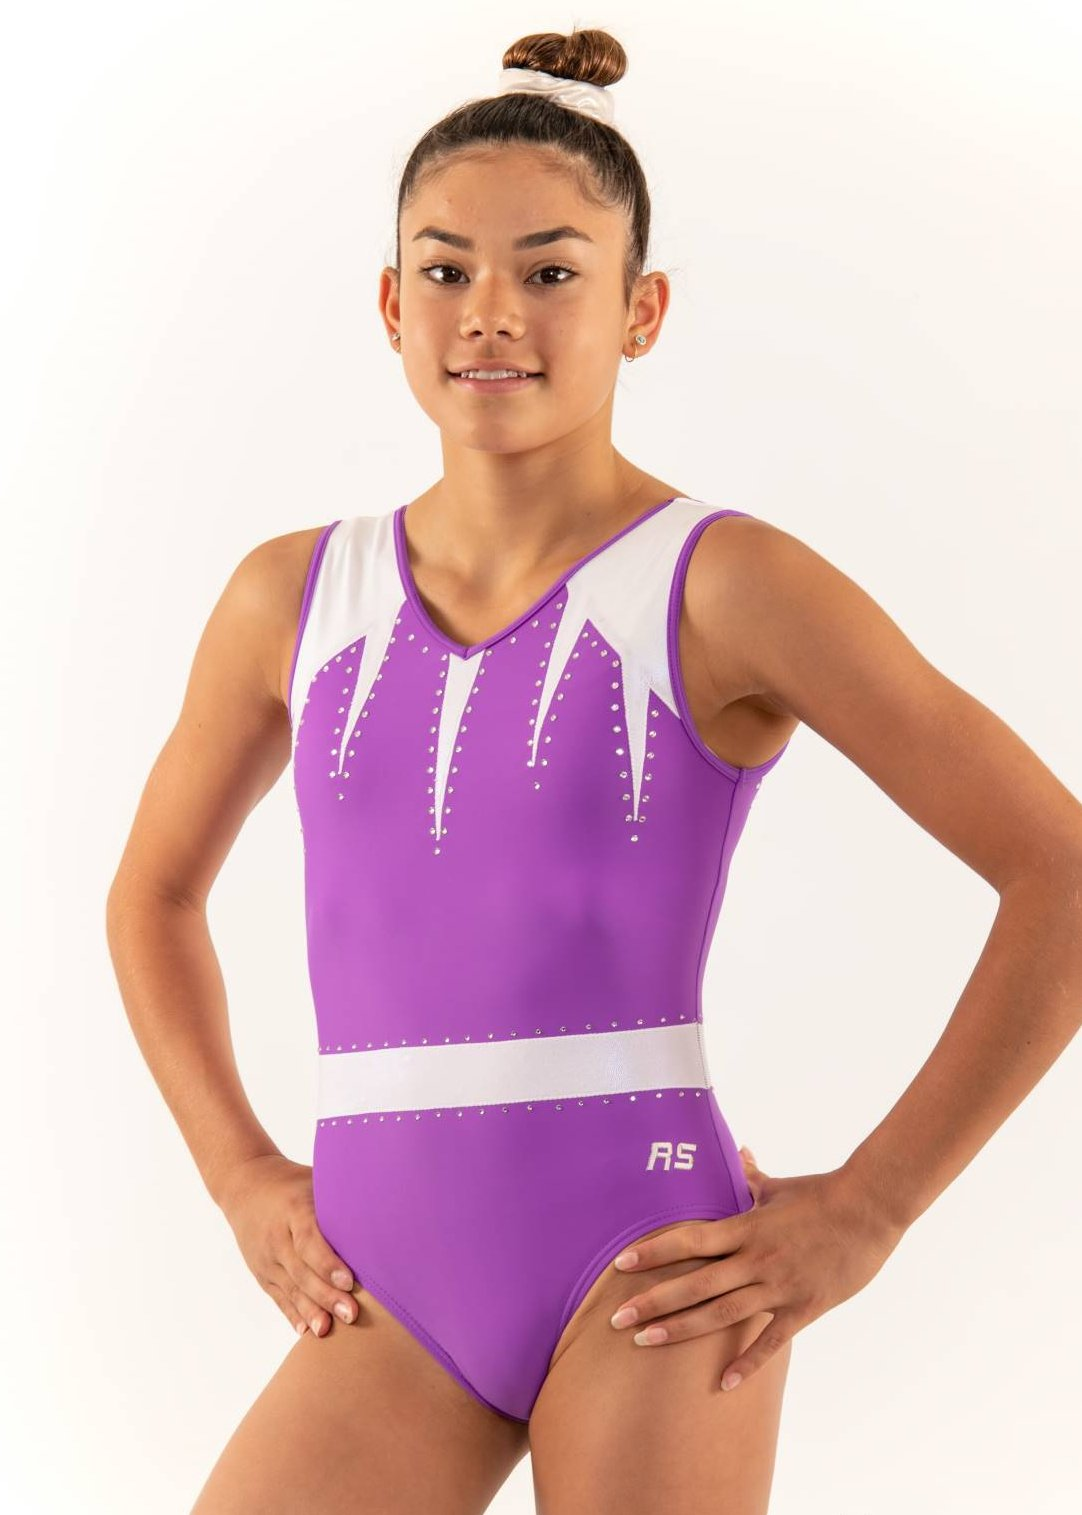 RSG-468 Posie Grape, Sleeveless Leotards, RS Gymwear Australia